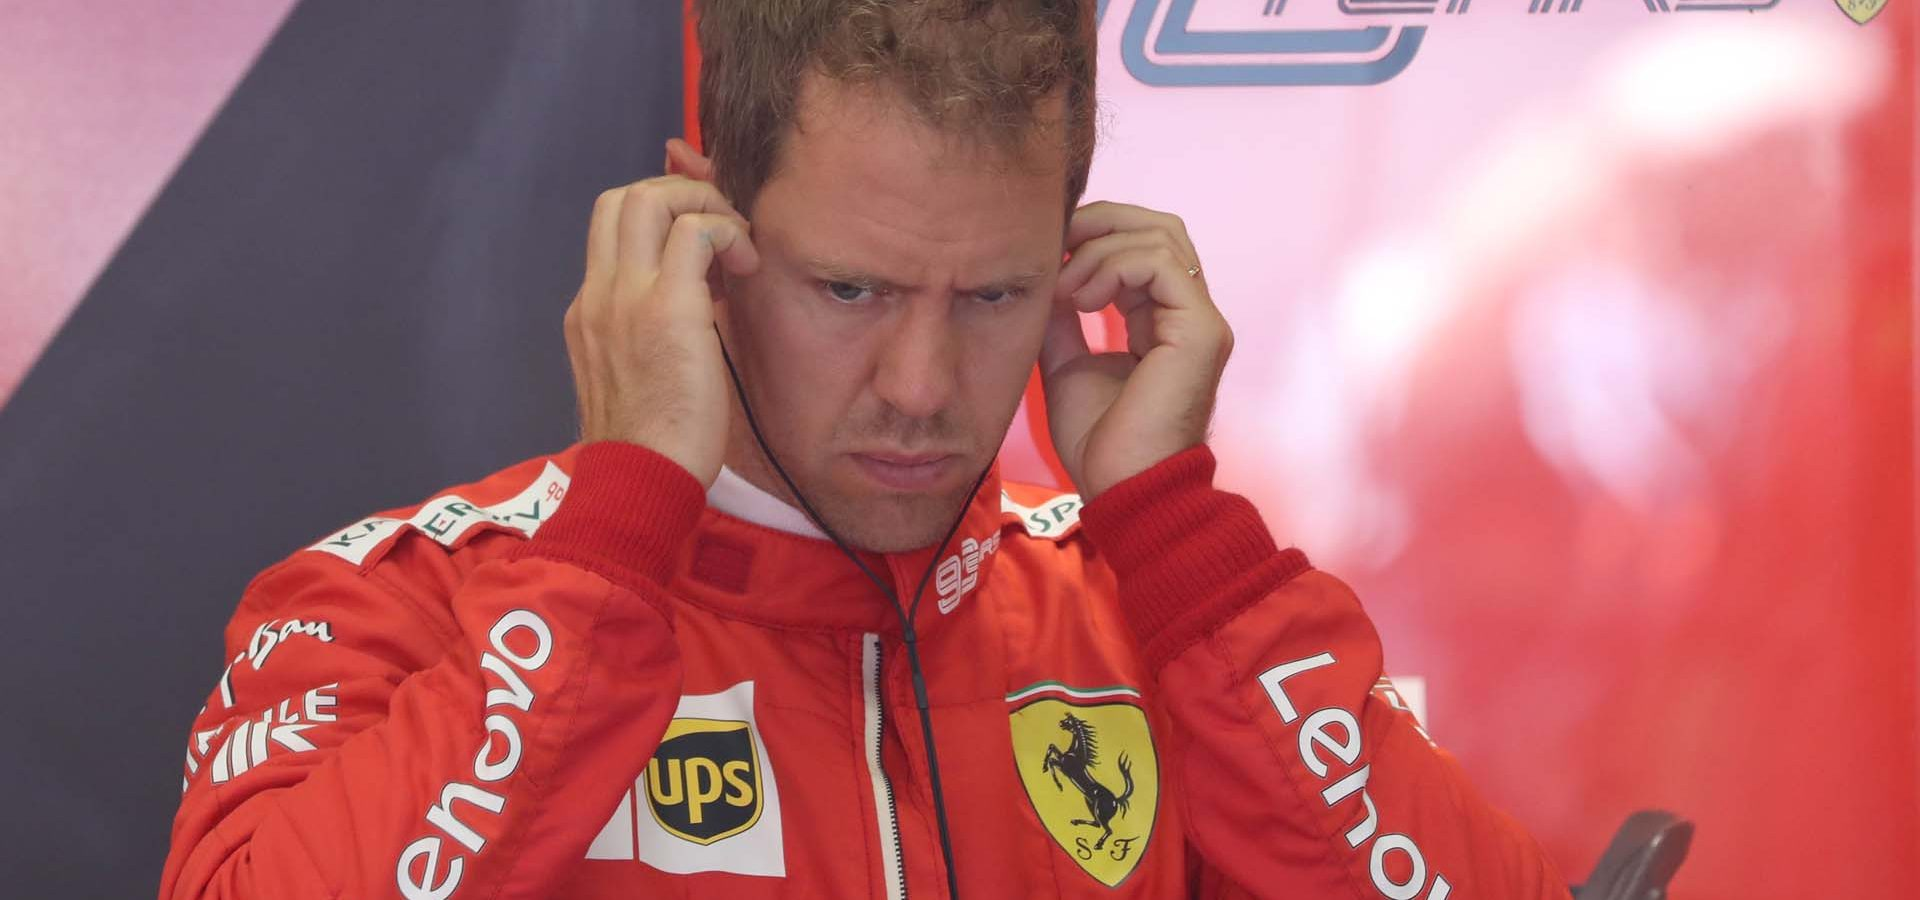 SPIELBERG,AUSTRIA,28.JUN.19 - MOTORSPORTS, FORMULA 1 - Grand Prix of Austria, Red Bull Ring, free practice. Image shows Sebastian Vettel (GER/ Ferrari).  Photo: GEPA pictures/ Andreas Pranter - For editorial use only. Image is free of charge.